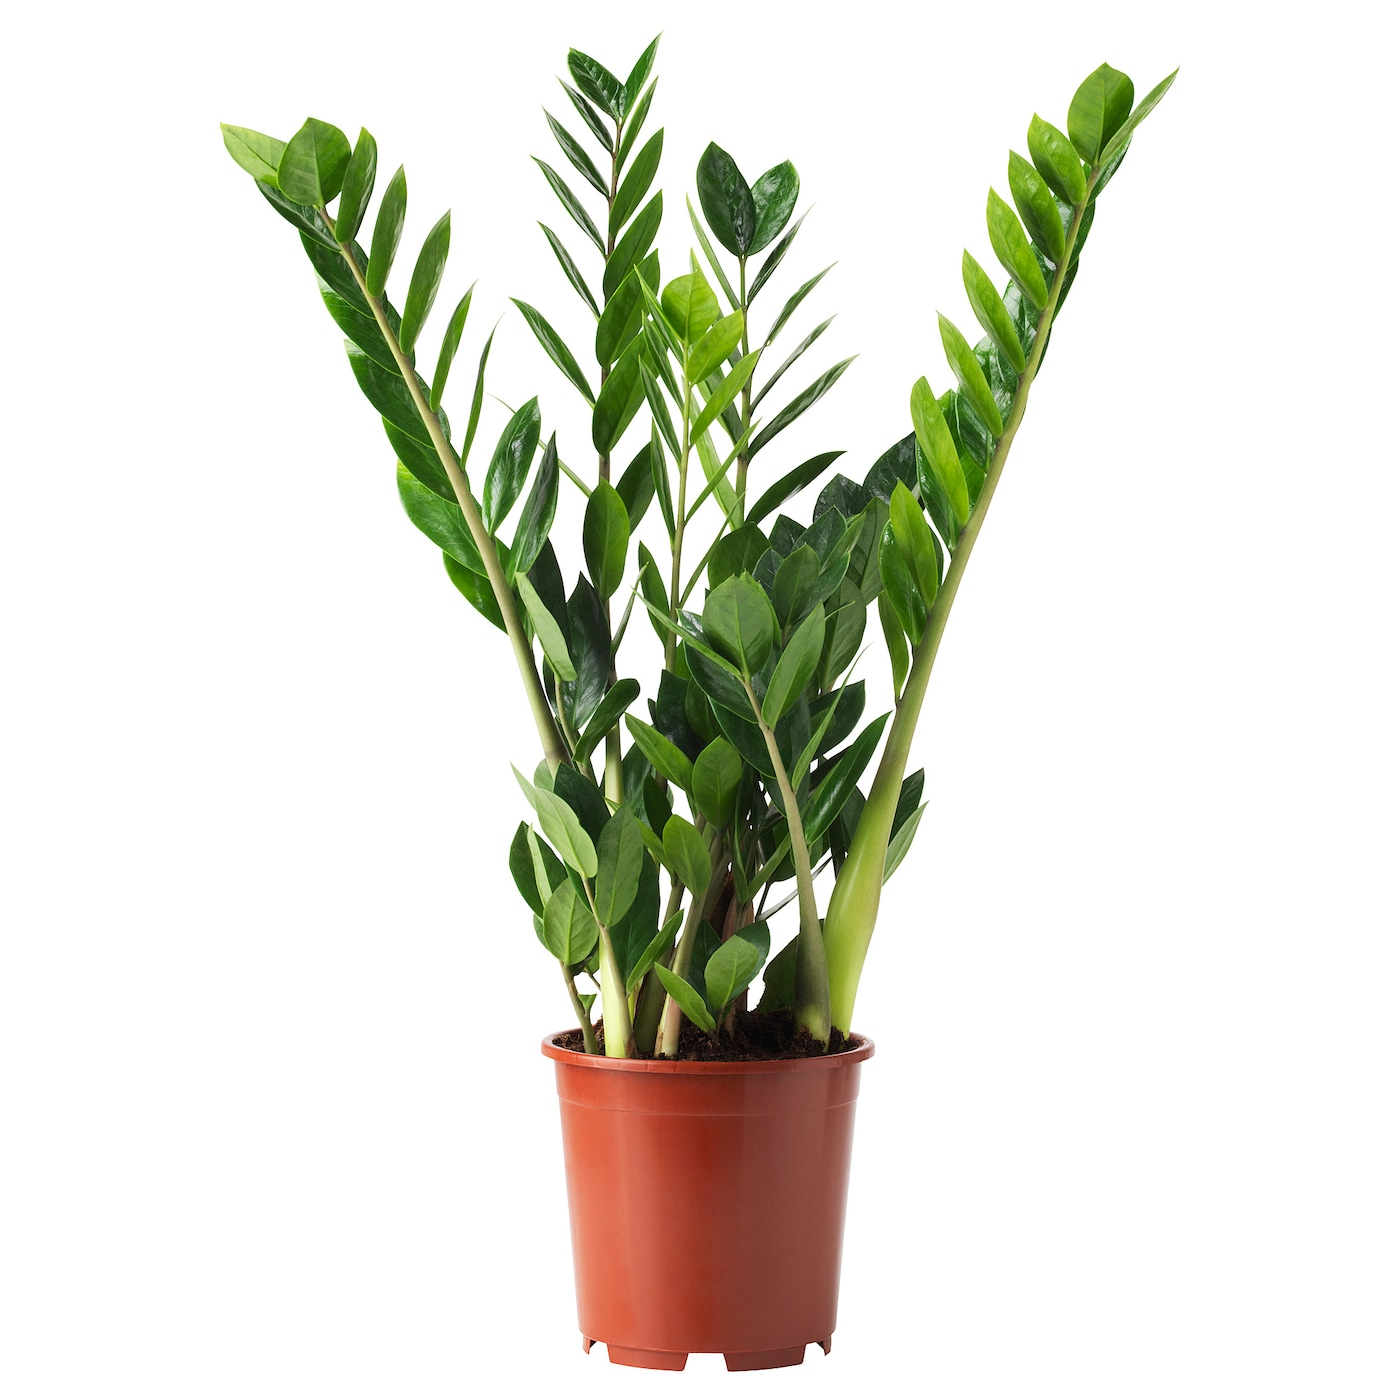 Ikea Zamioculcas Potted Plant